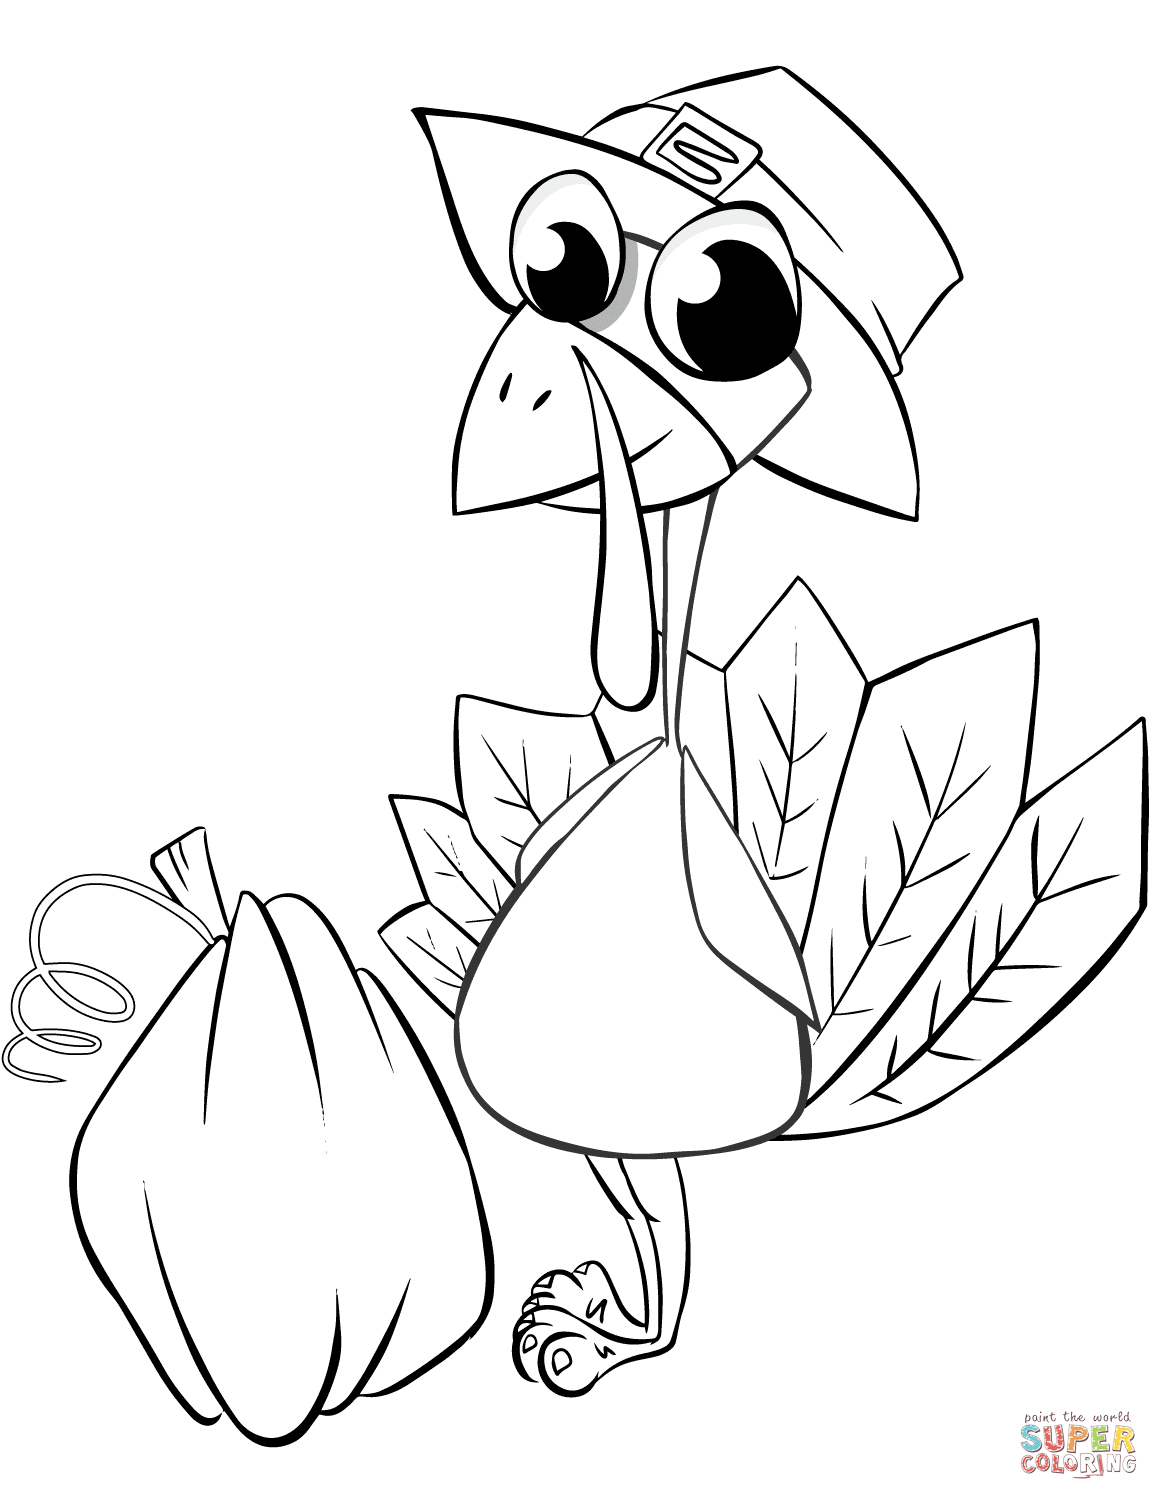 Thanksgiving Turkey With Pumpkin Coloring Page   Free Printable - Free Printable Pictures Of Turkeys To Color